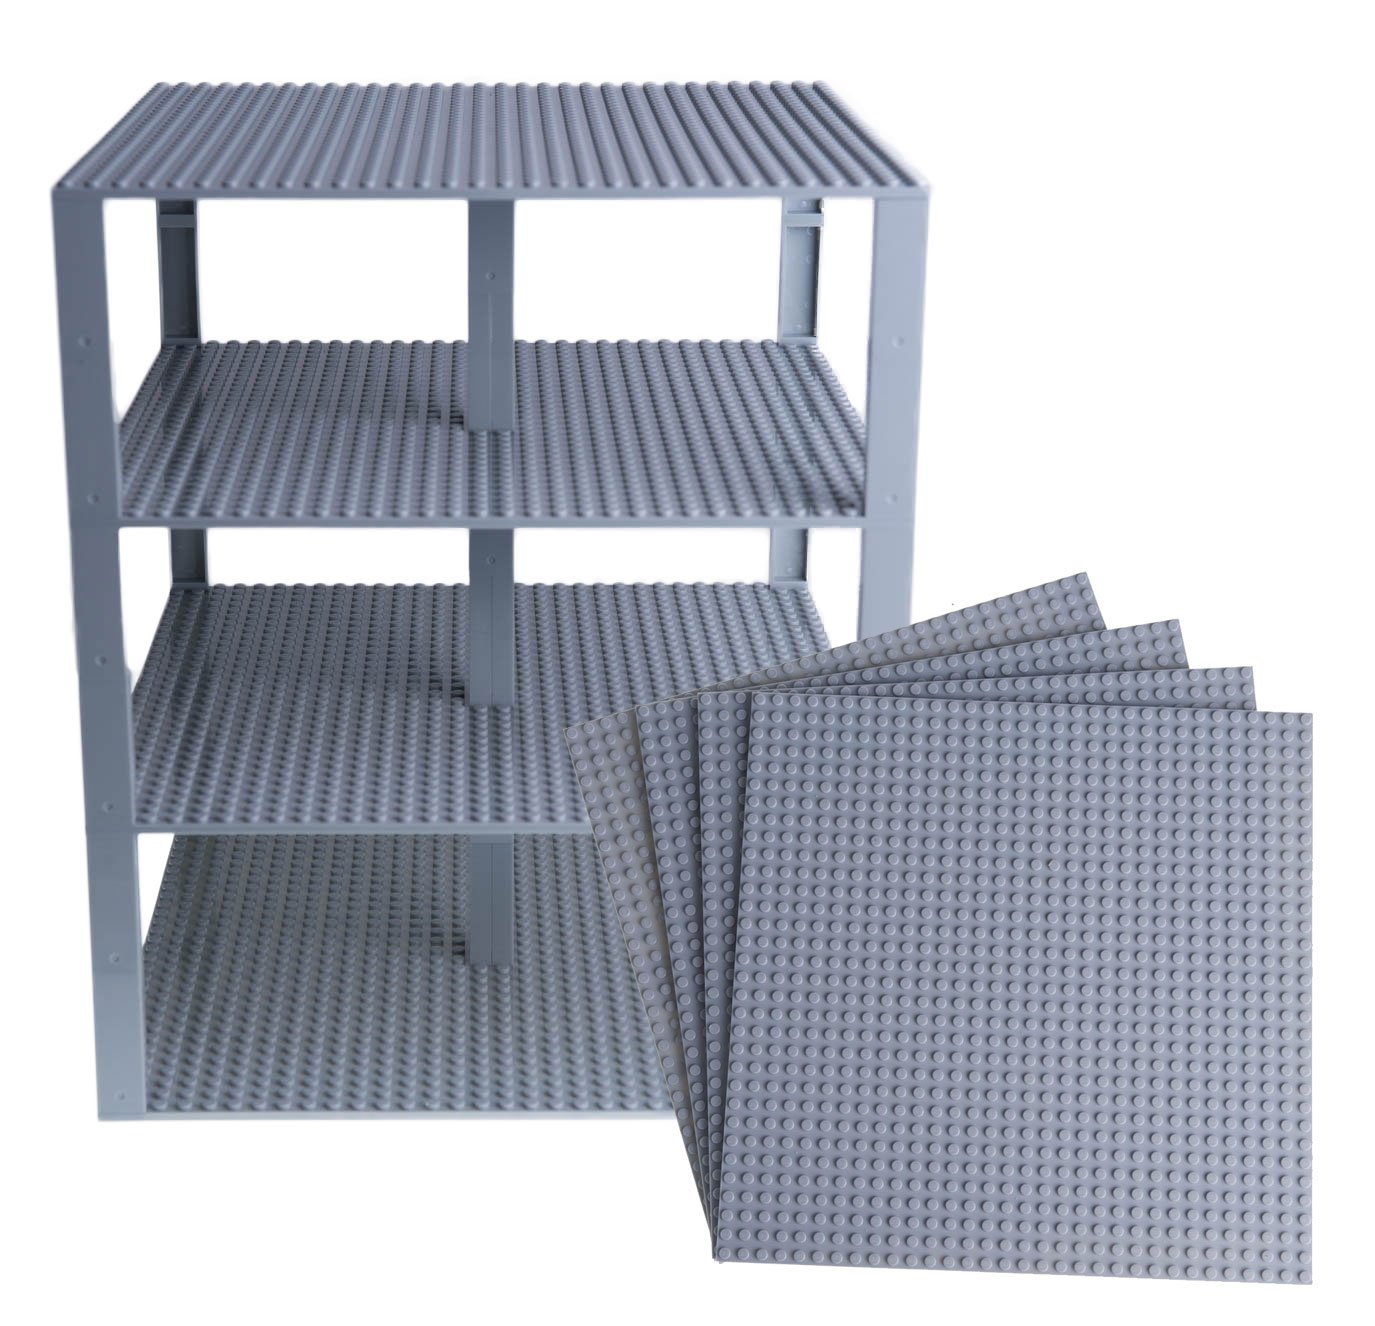 """Strictly Briks Classic Baseplates 10"""" x 10"""" Brik Tower 100% Compatible with All Major Brands   Building Bricks for Towers and More   4 Light Gray Stackable Base Plates & 30 Stackers"""